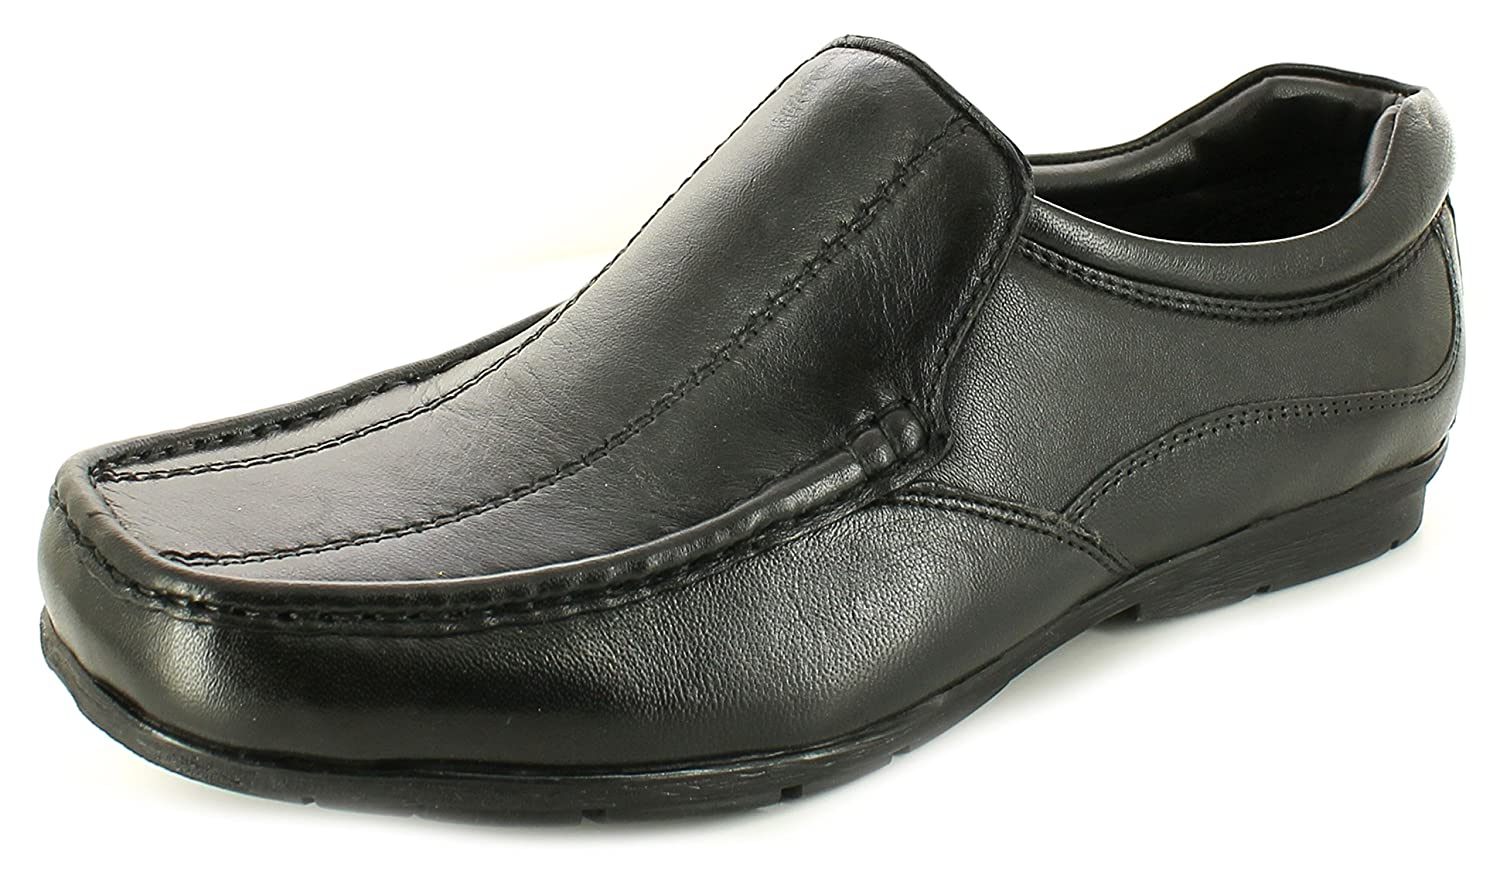 Rockstorm Keaton Mens Other Leather Material Formal Shoes Black